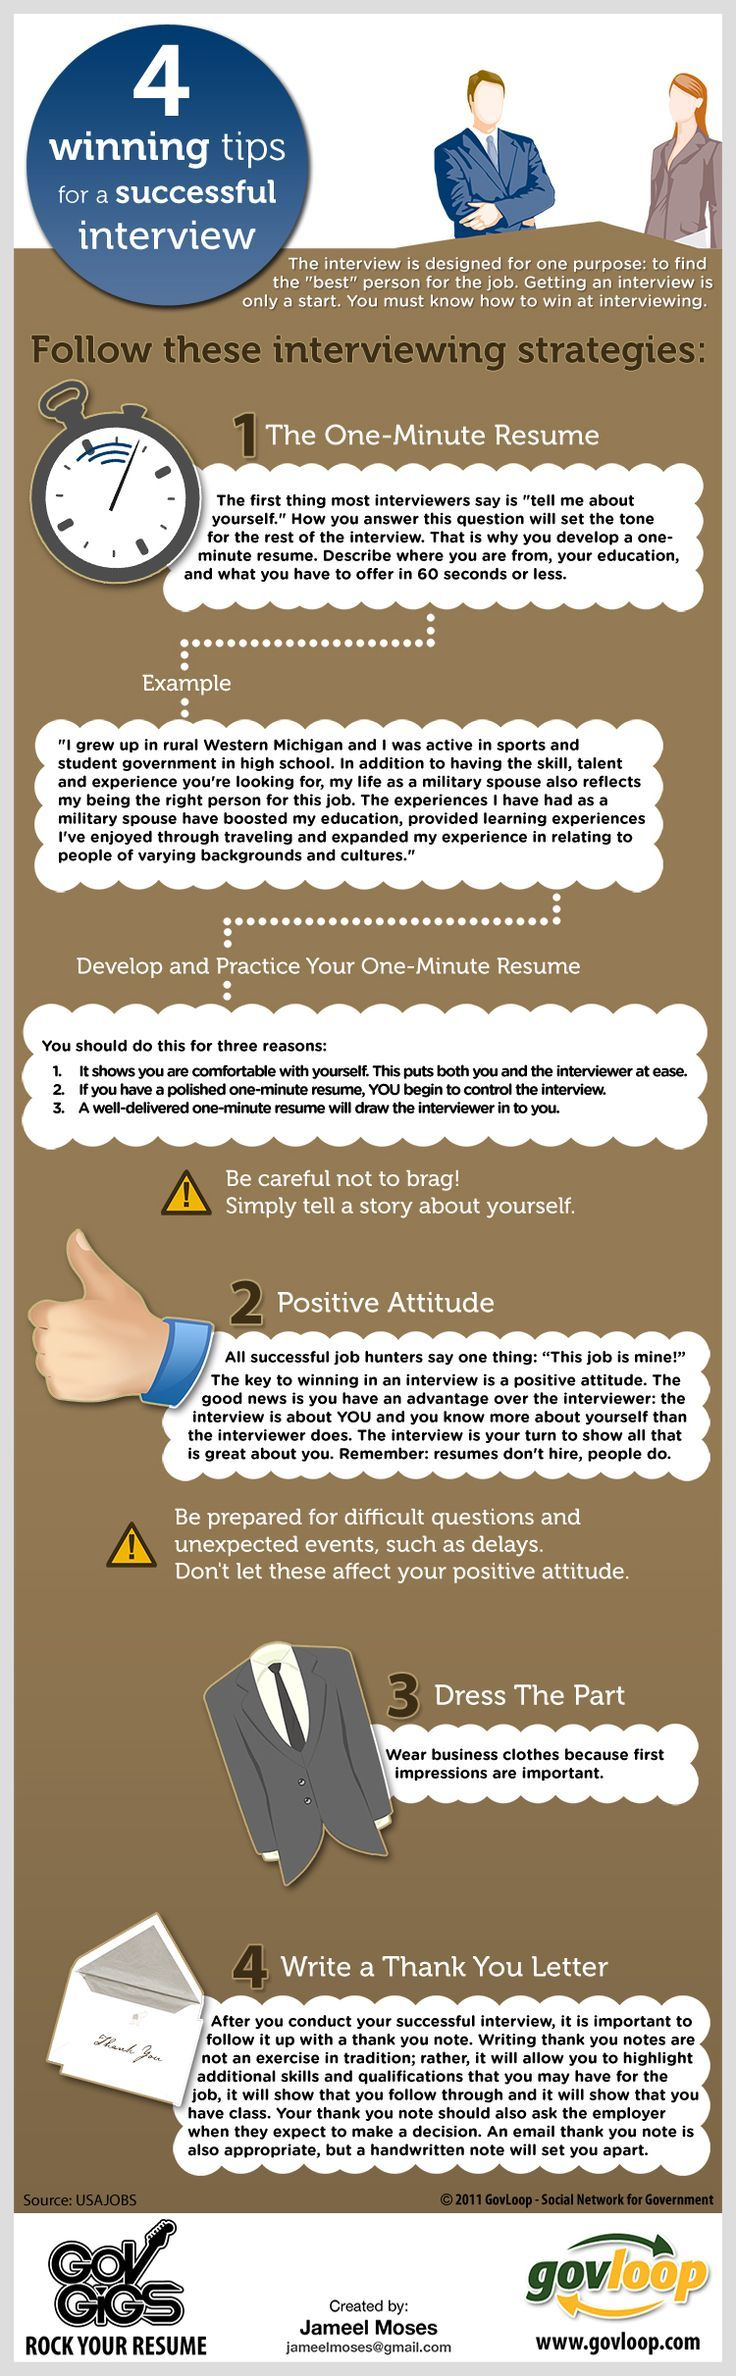 infographic 4 Winning Tips for a Successful